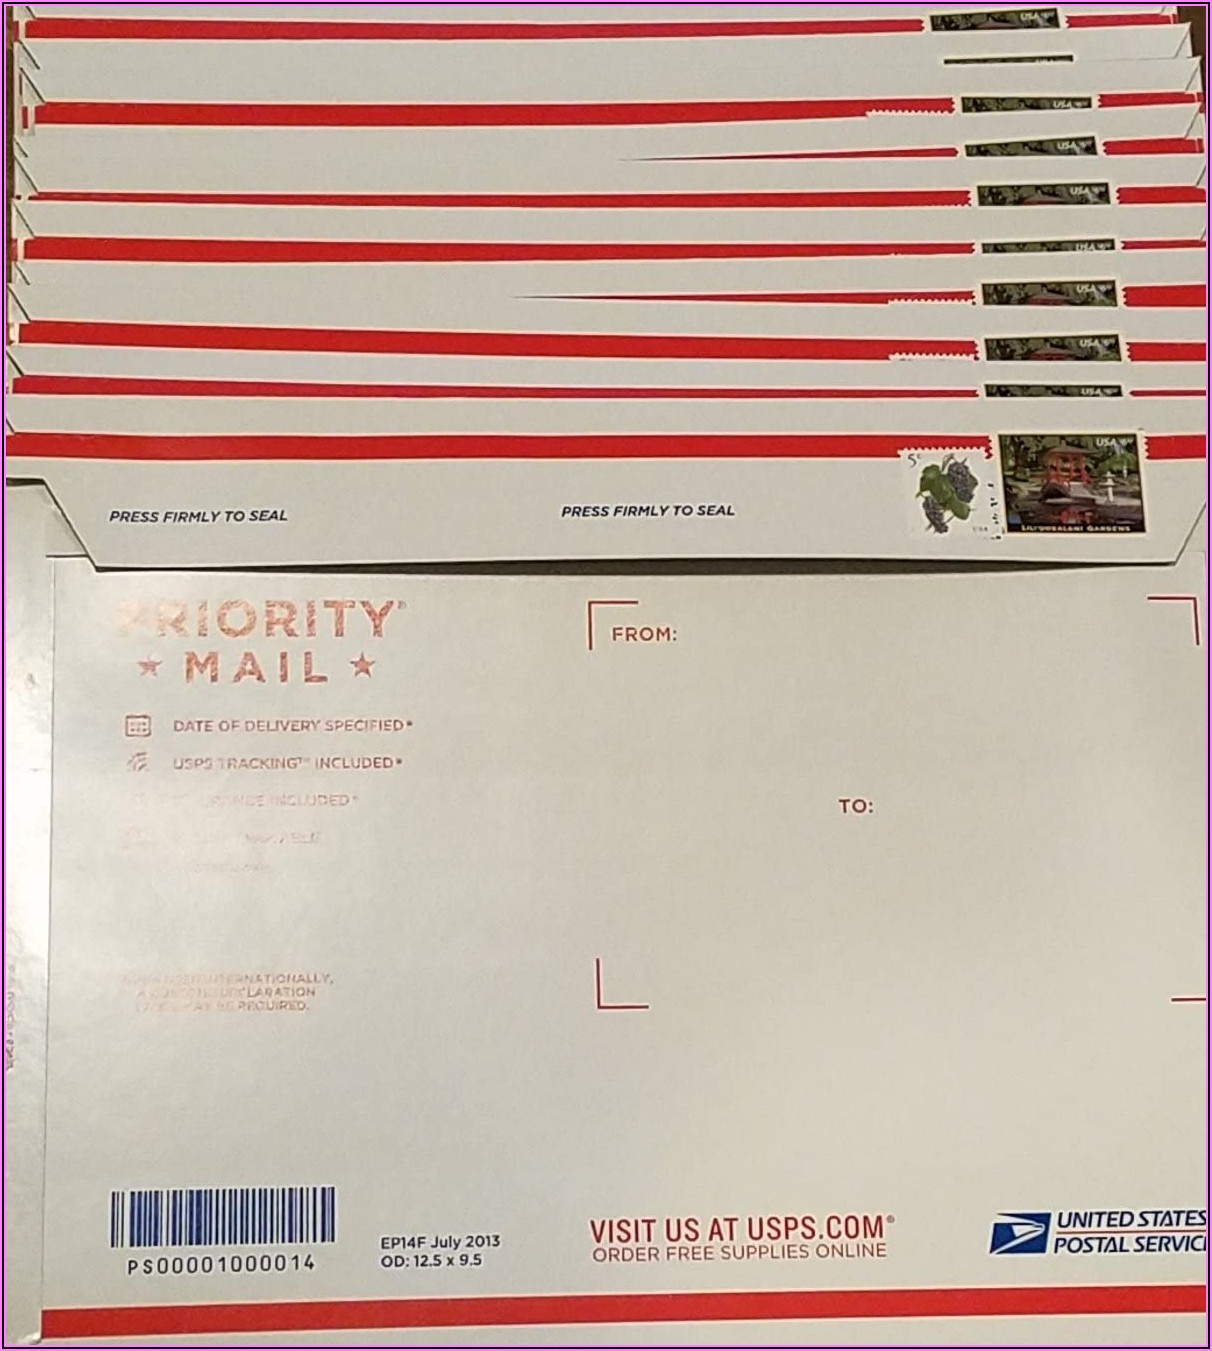 Prepaid Return Envelope Usps